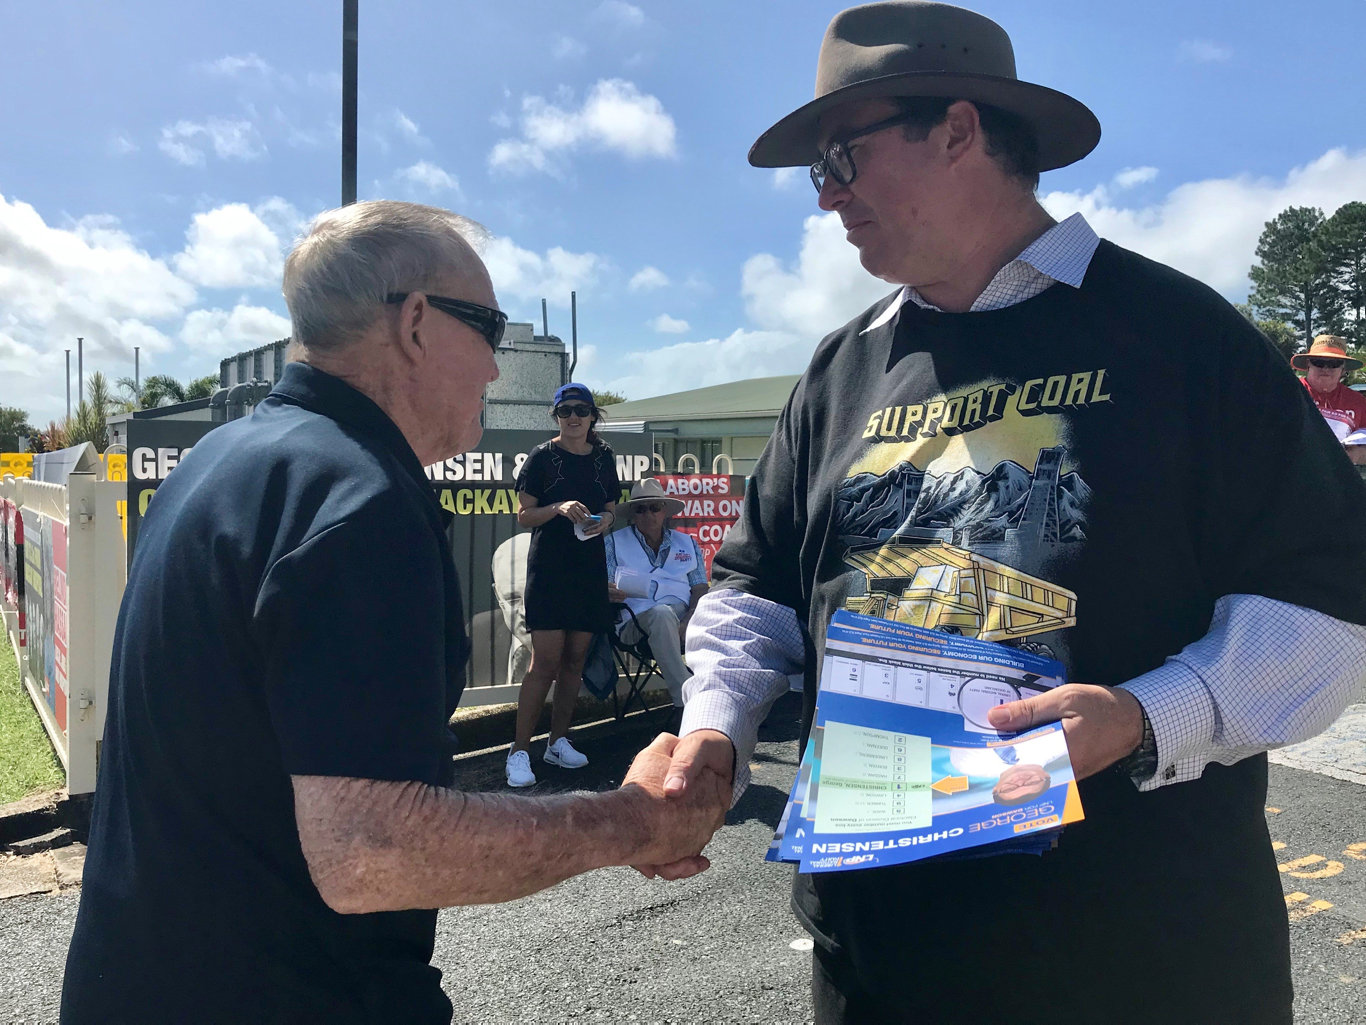 Member for Dawson George Christensen meets with voters at the Fitzgerald State School polling station.